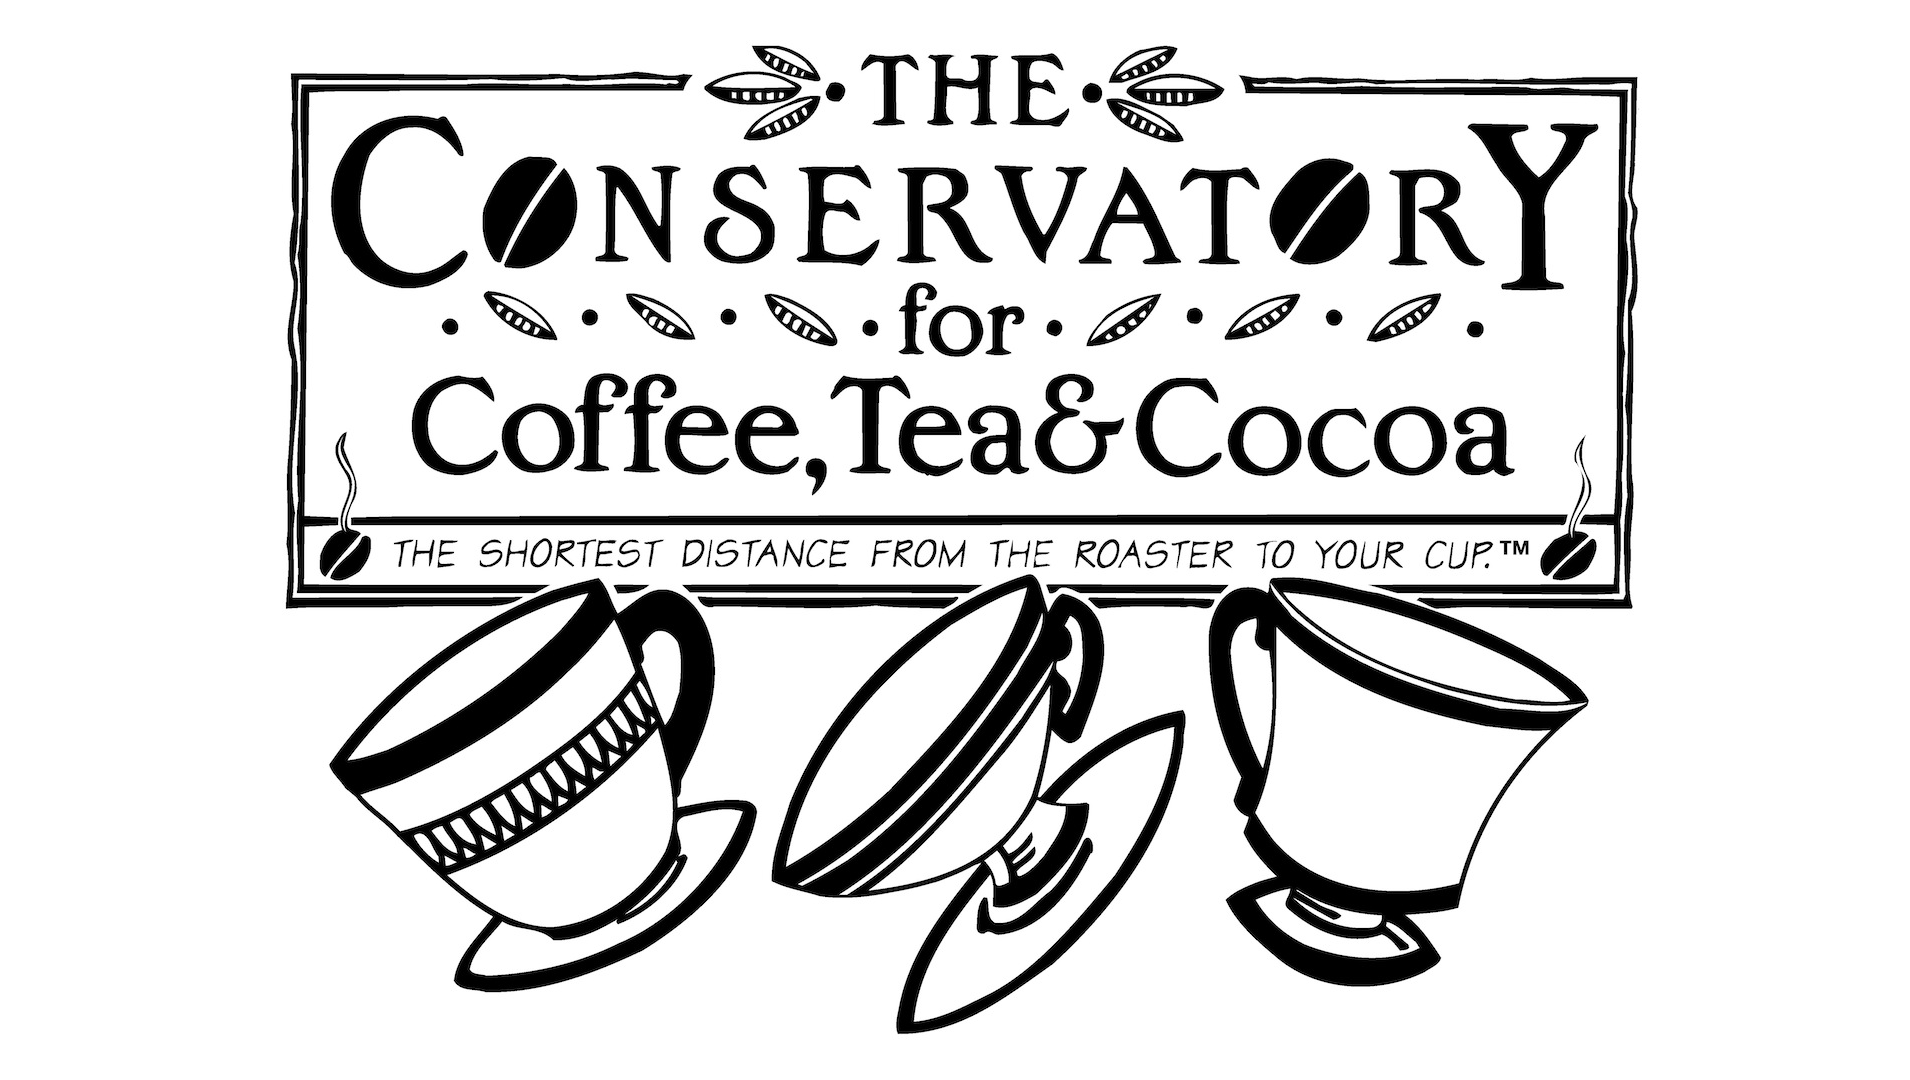 conservatory logo 2.png